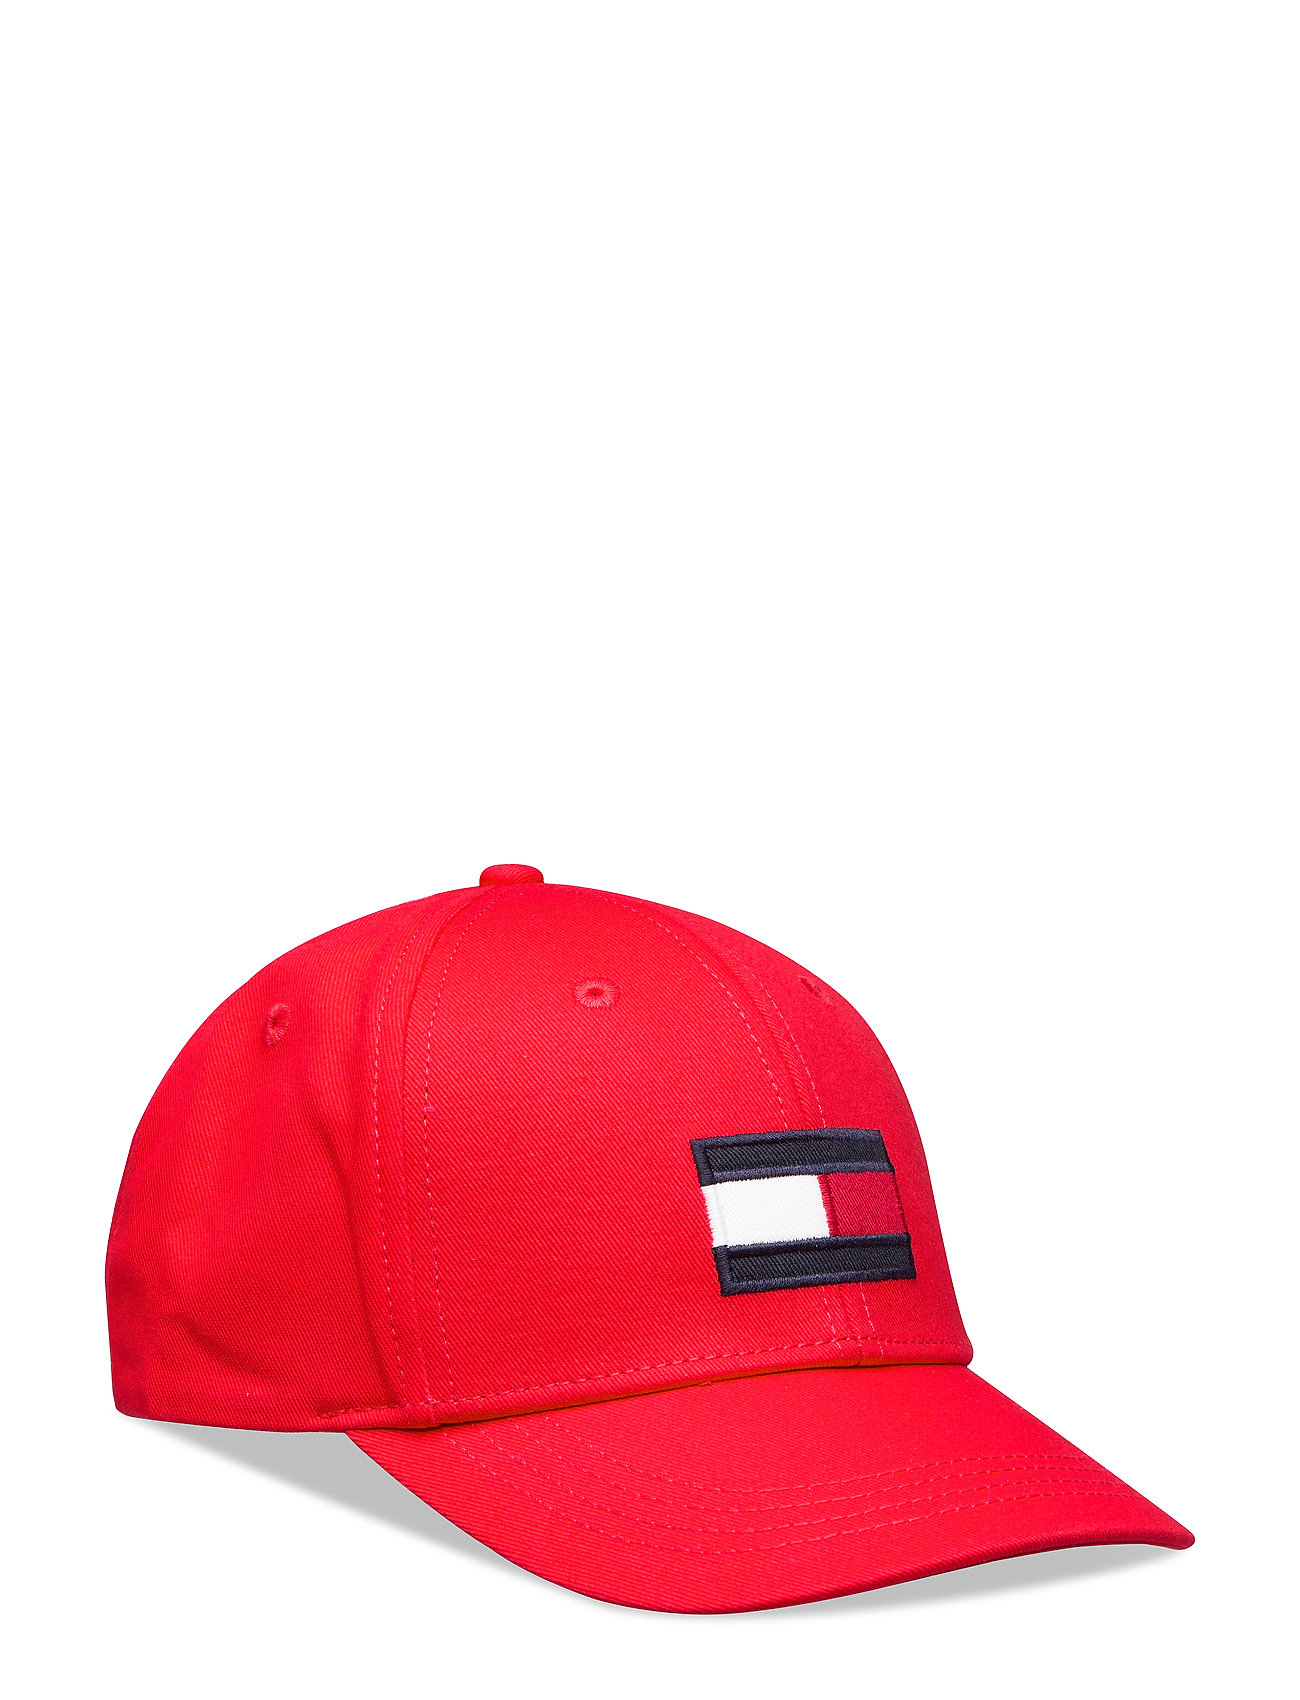 Tommy Hilfiger BIG FLAG CAP - RACING RED